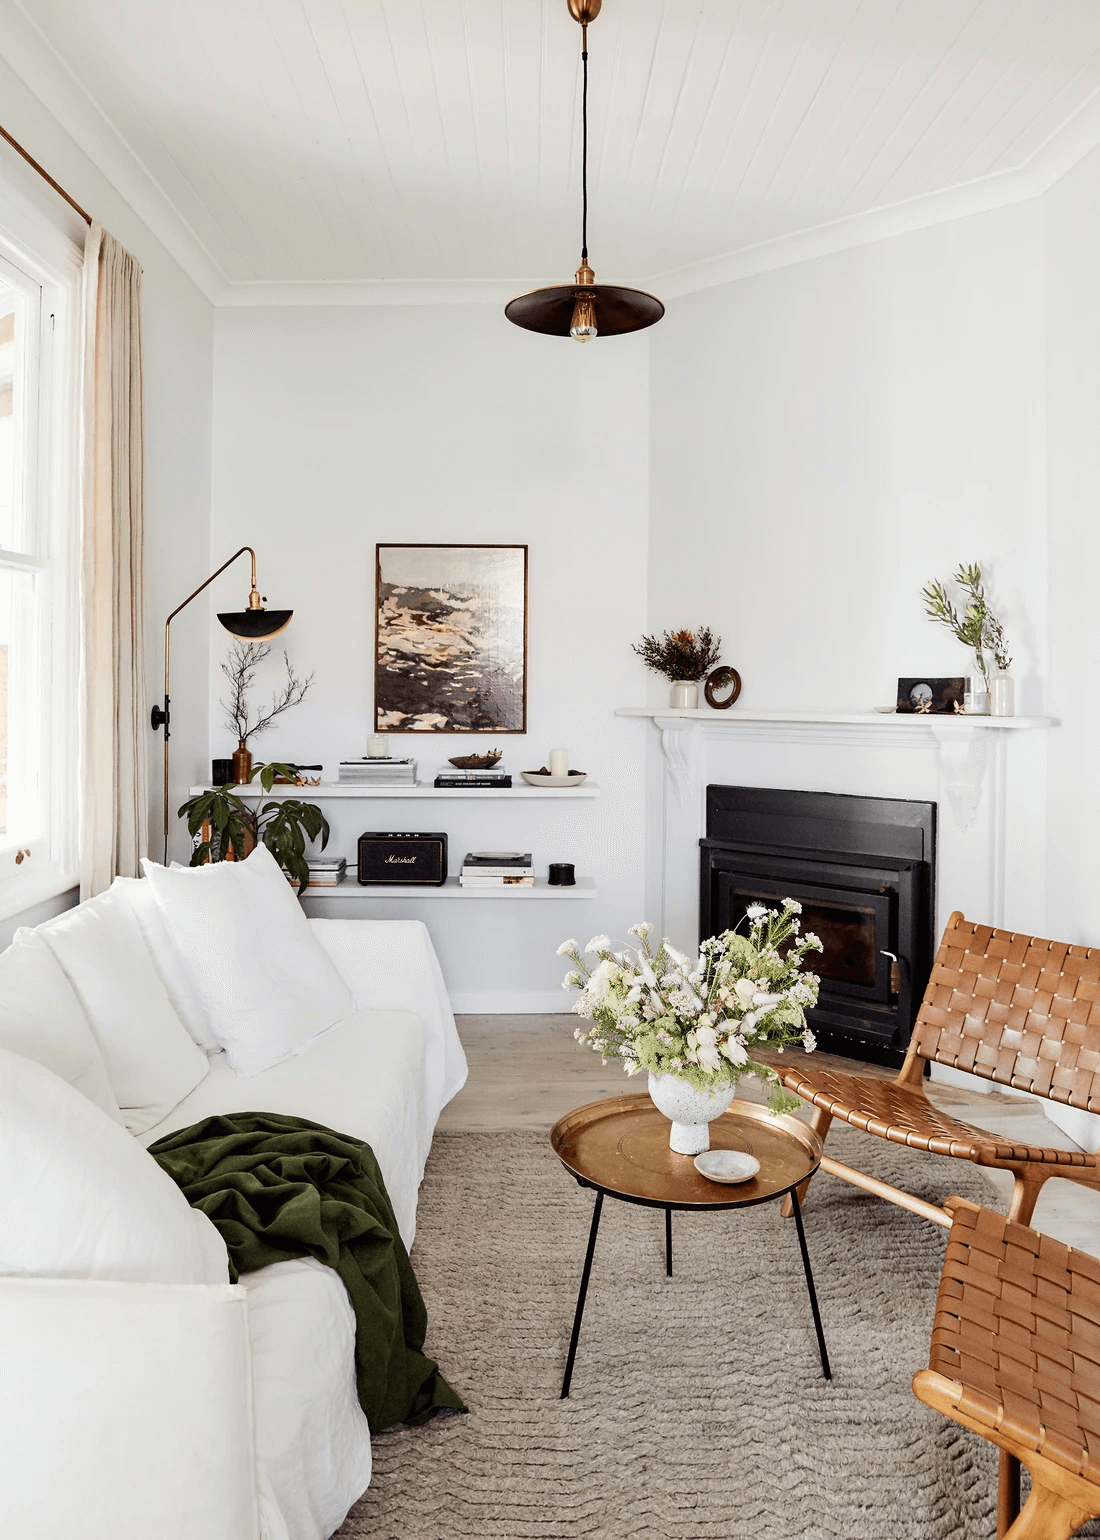 The Repose: A Restored 100-Year-Old Cottage in Australia